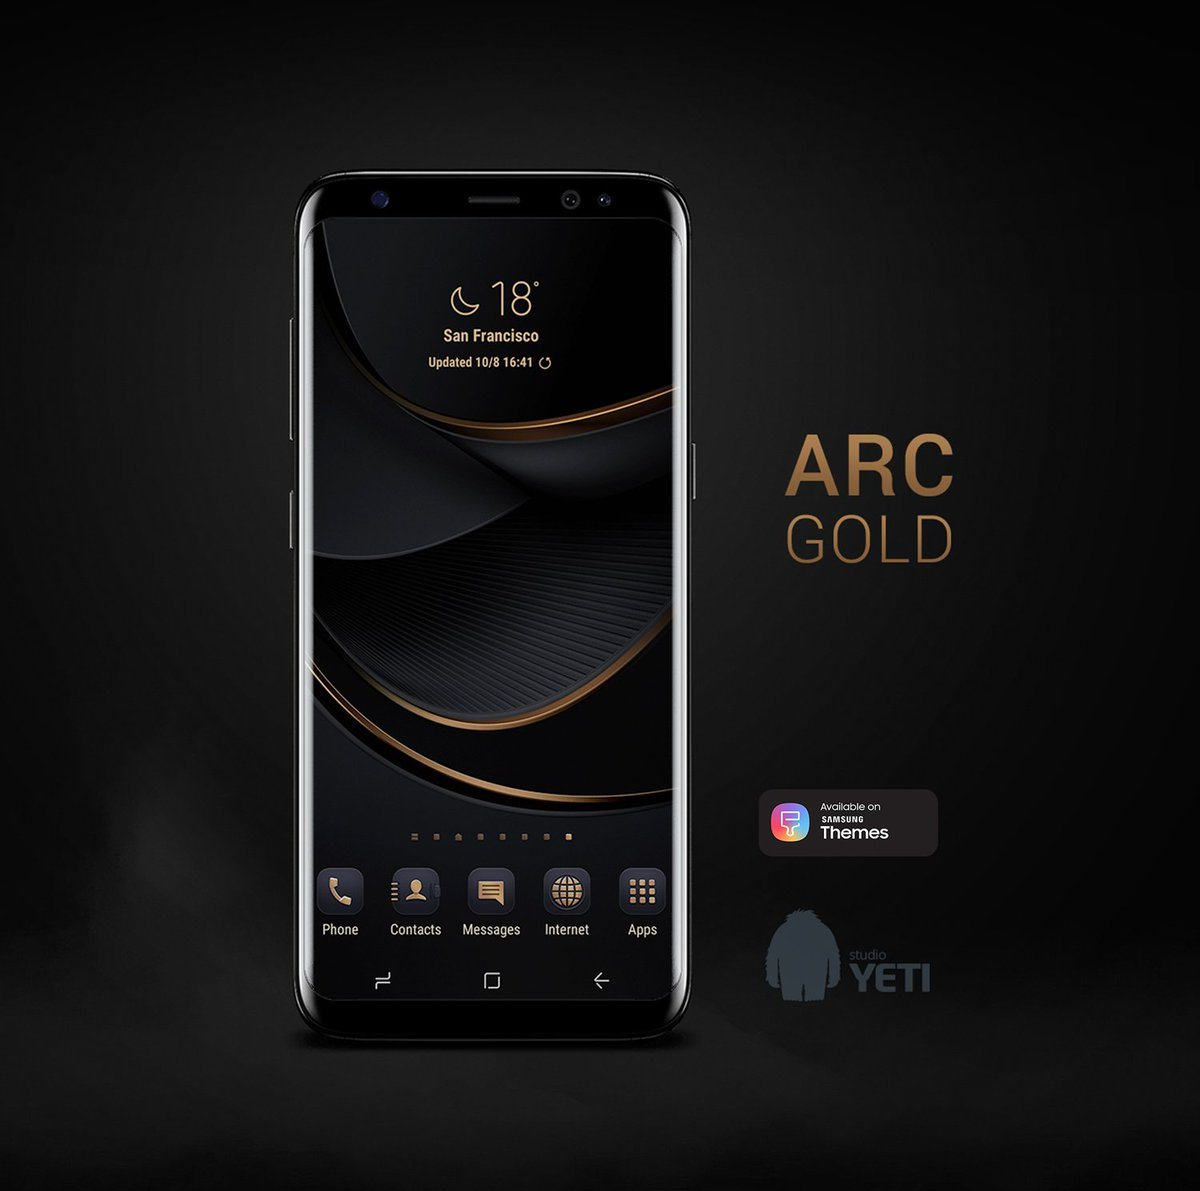 Sw Design Samsung Galaxy Themes On Twitter Sw Arc Gold Theme Available On Samsung Themes Store Link Samsung Themes Https T Co Zmeixcykhh Samsungthemes Galaxys9 Galaxys8 Wallpaper Theme Galaxys9plus Elegant Note9 Modern Samsung